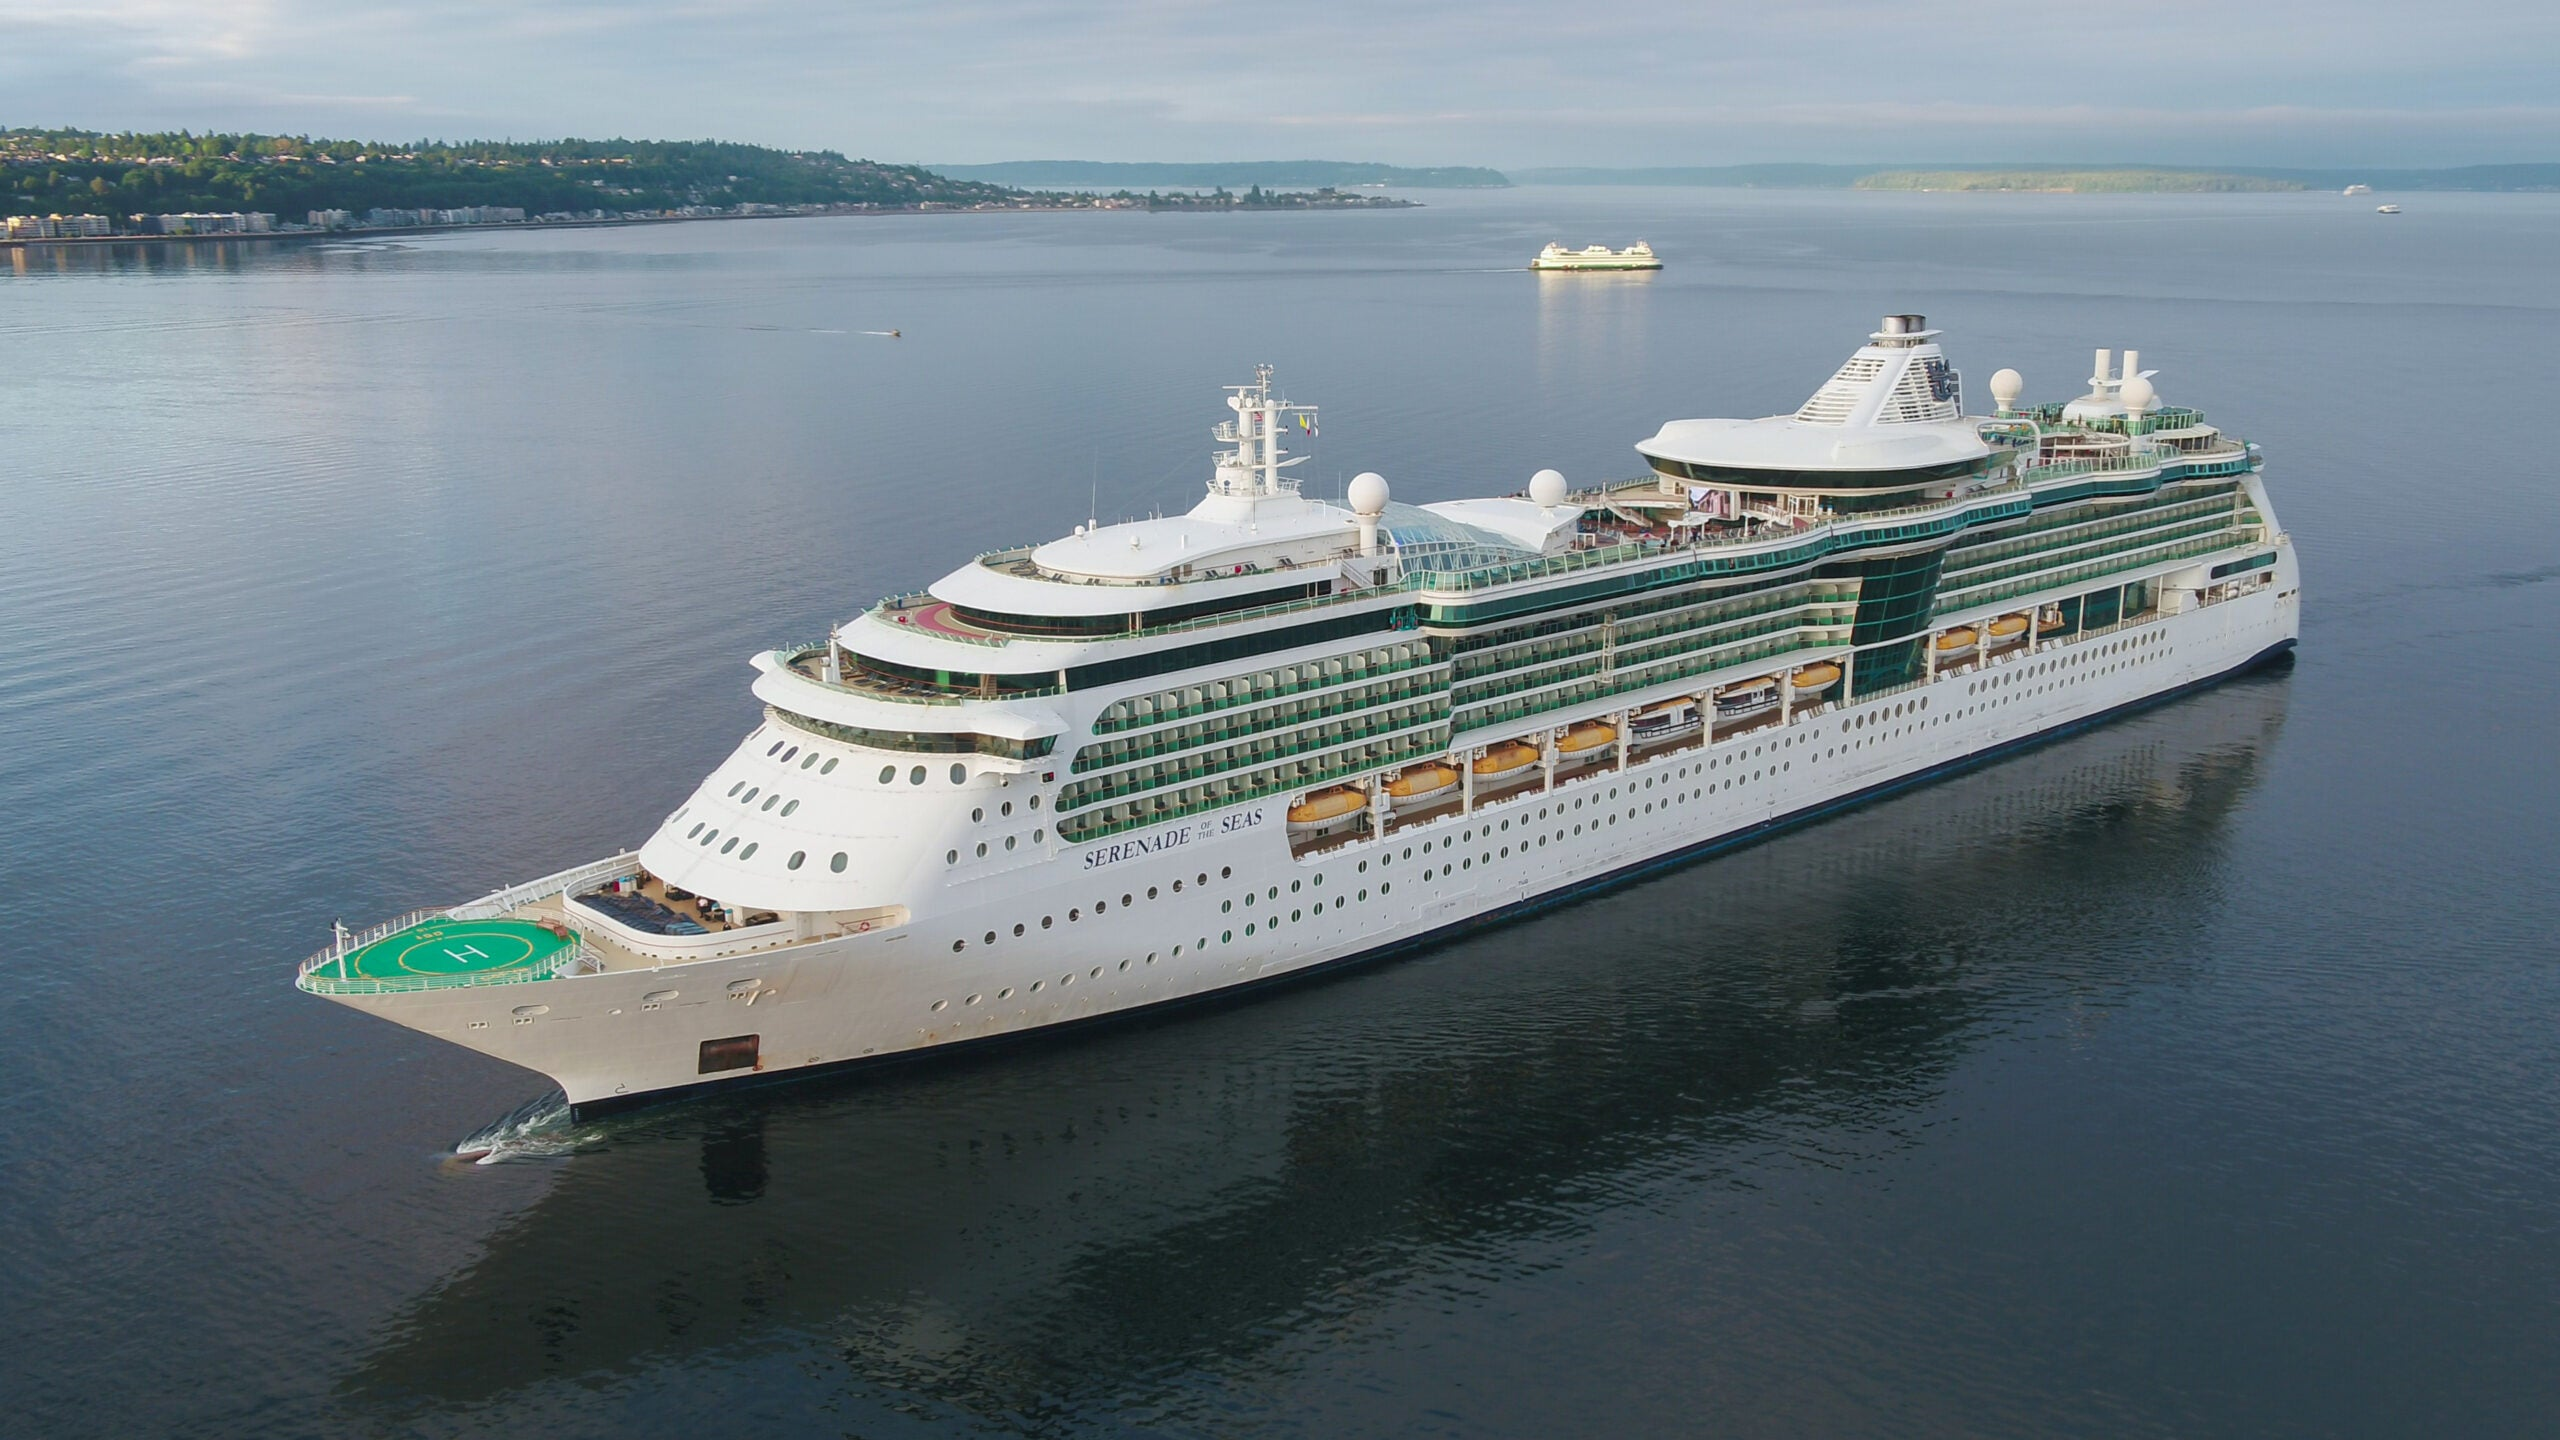 Royal Caribbean just announced the most epic around-the-world cruise ever